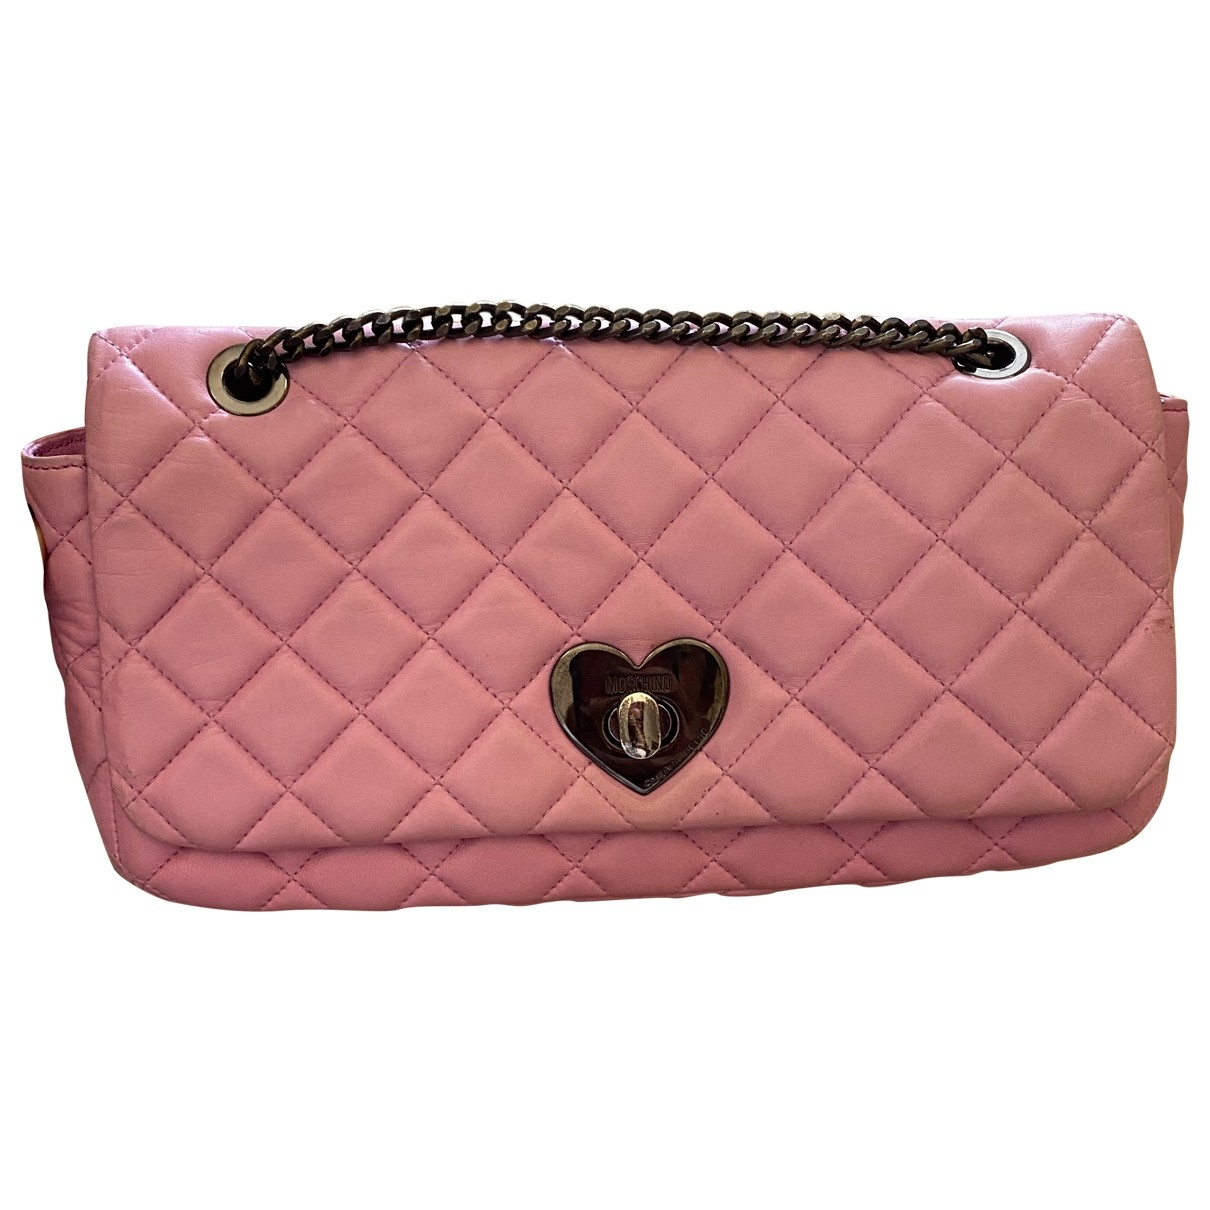 Moschino Cheap And Chic \N Pink Leather Clutch bag for Women \N